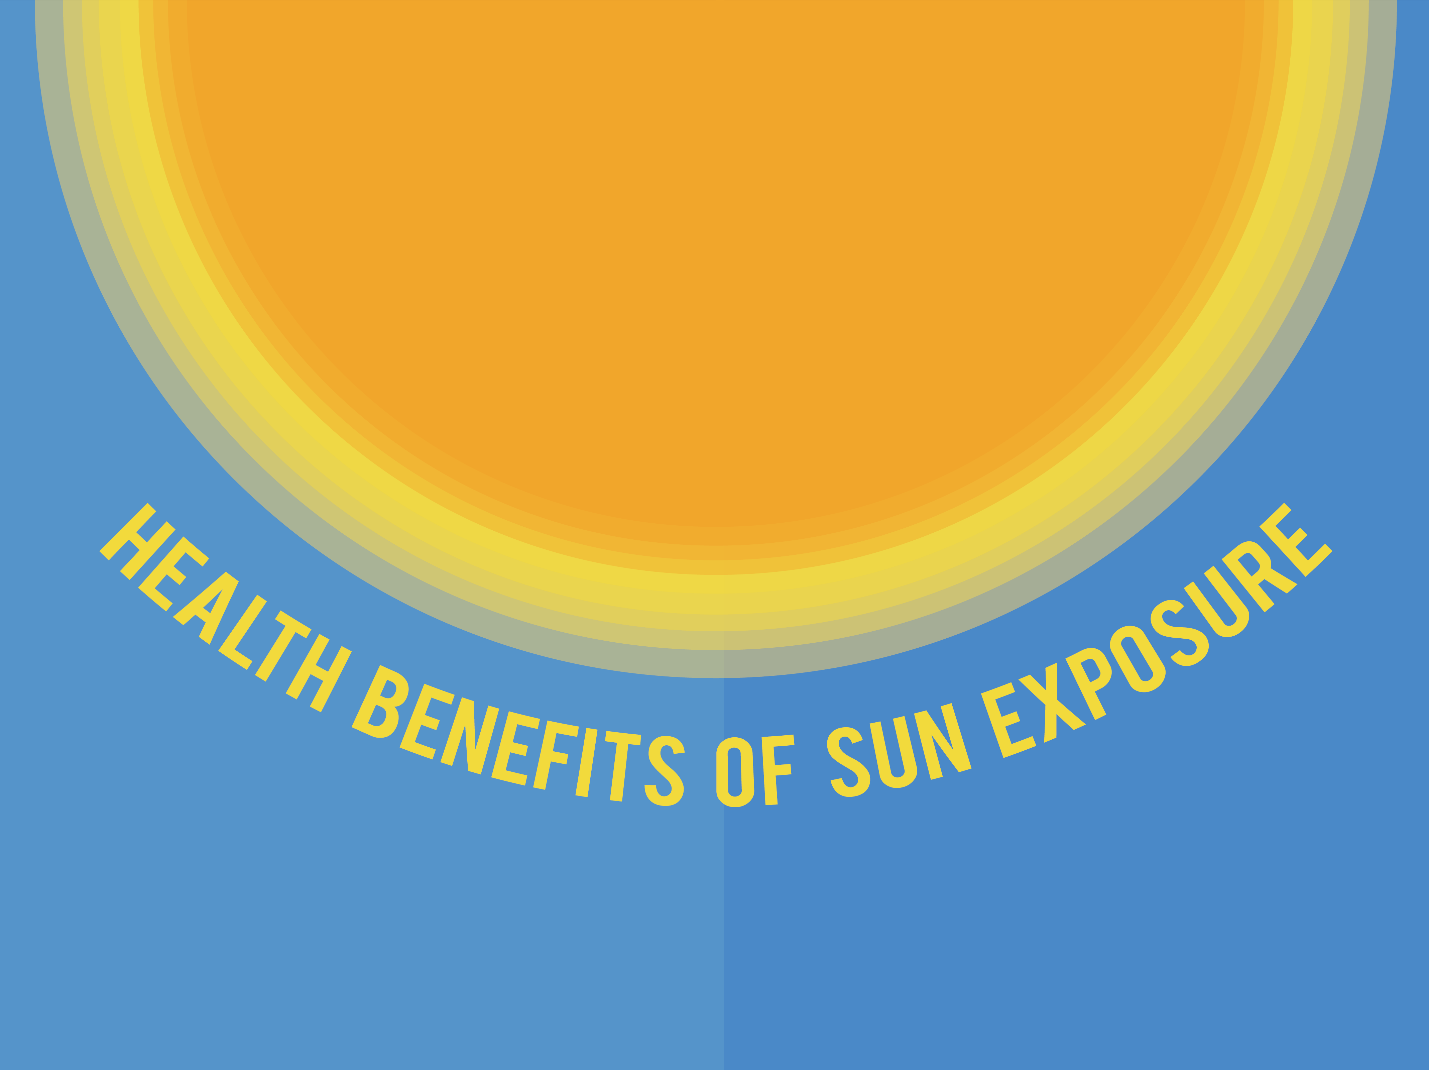 Healthy Benefits of Sun Exposure